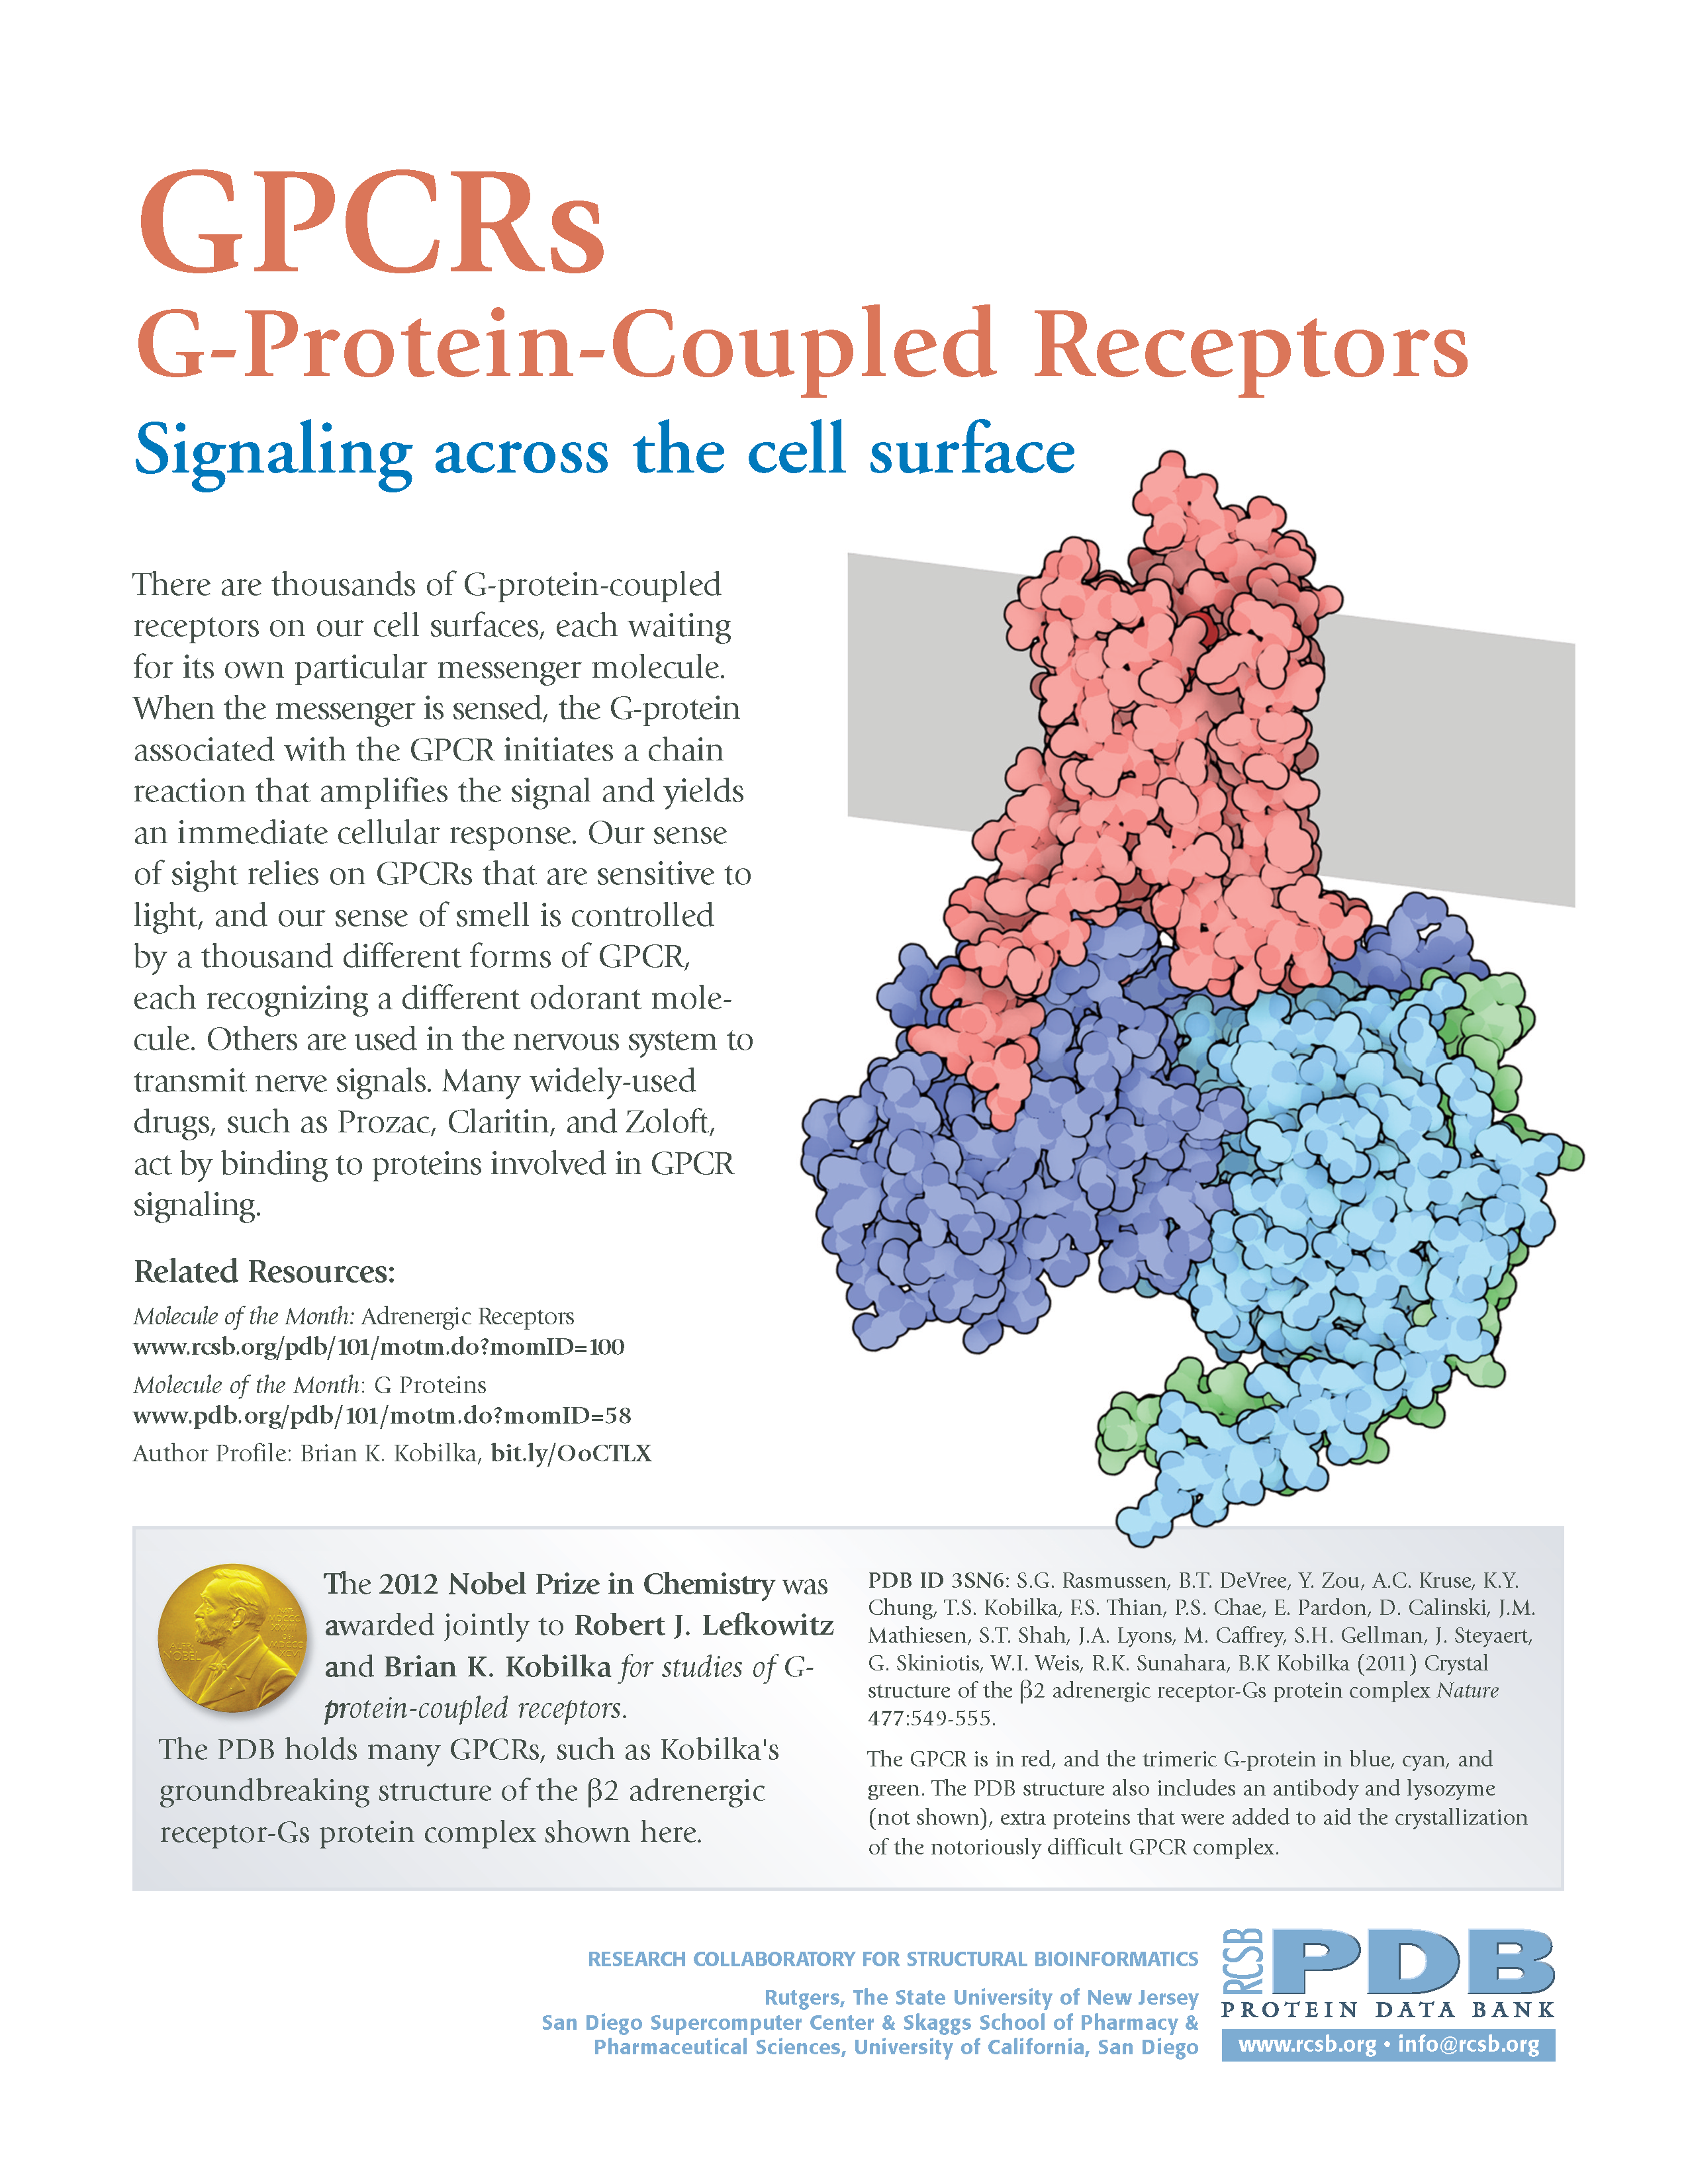 PDB-101: Learn: Flyers, Posters & Other Resources: G-Protein